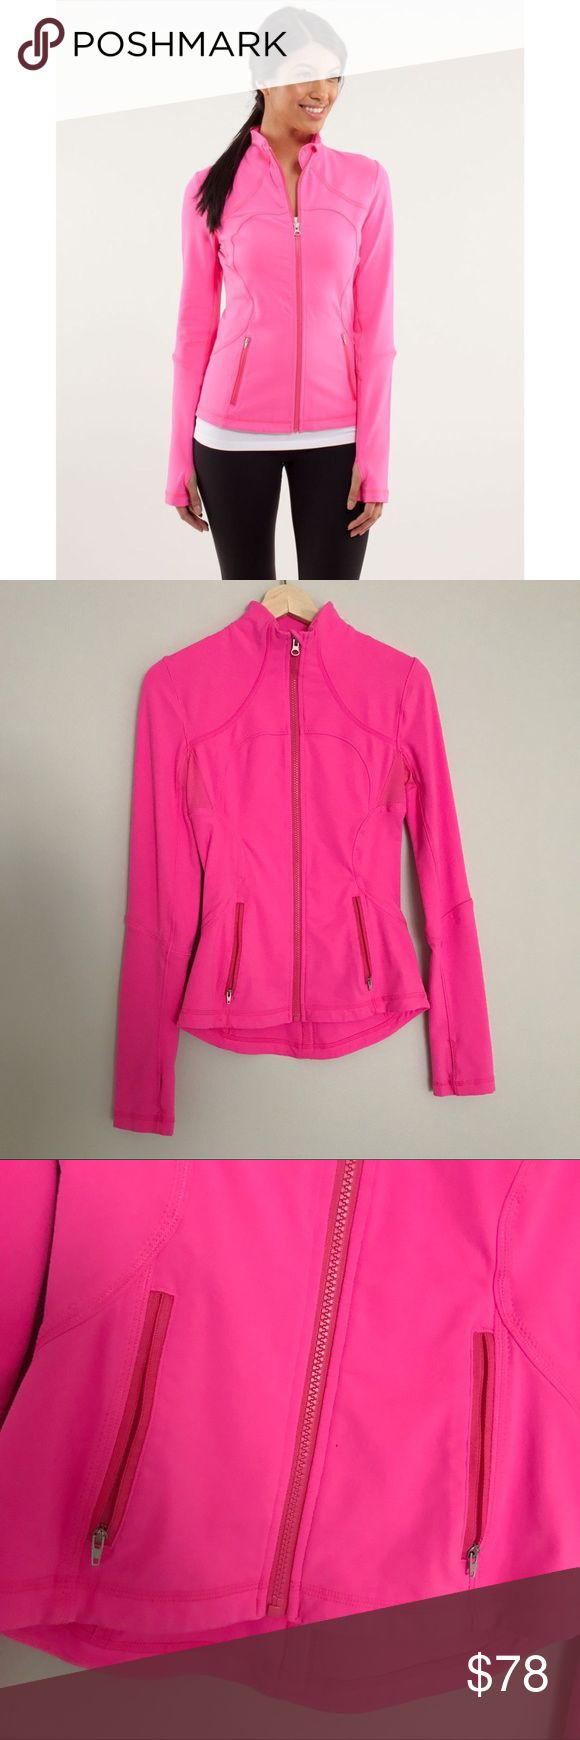 LULULEMON | RARE PINK Forme Jacket LULULEMON | RARE PINK Forme Jacket • Super cute, slim fit zip up jacket. RARE COLOR, neon pink. Fits close to your body with stretch. Front pockets and thumbholes. Mesh venting in the armpits helps you let off steam. Dropped hem for more coverage in the rear. Used condition & great quality! Size 4. Model picture to show style.   Offers are welcome! Please use offer button. Bundle & save 10%! 🌝 lululemon athletica Jackets & Coats